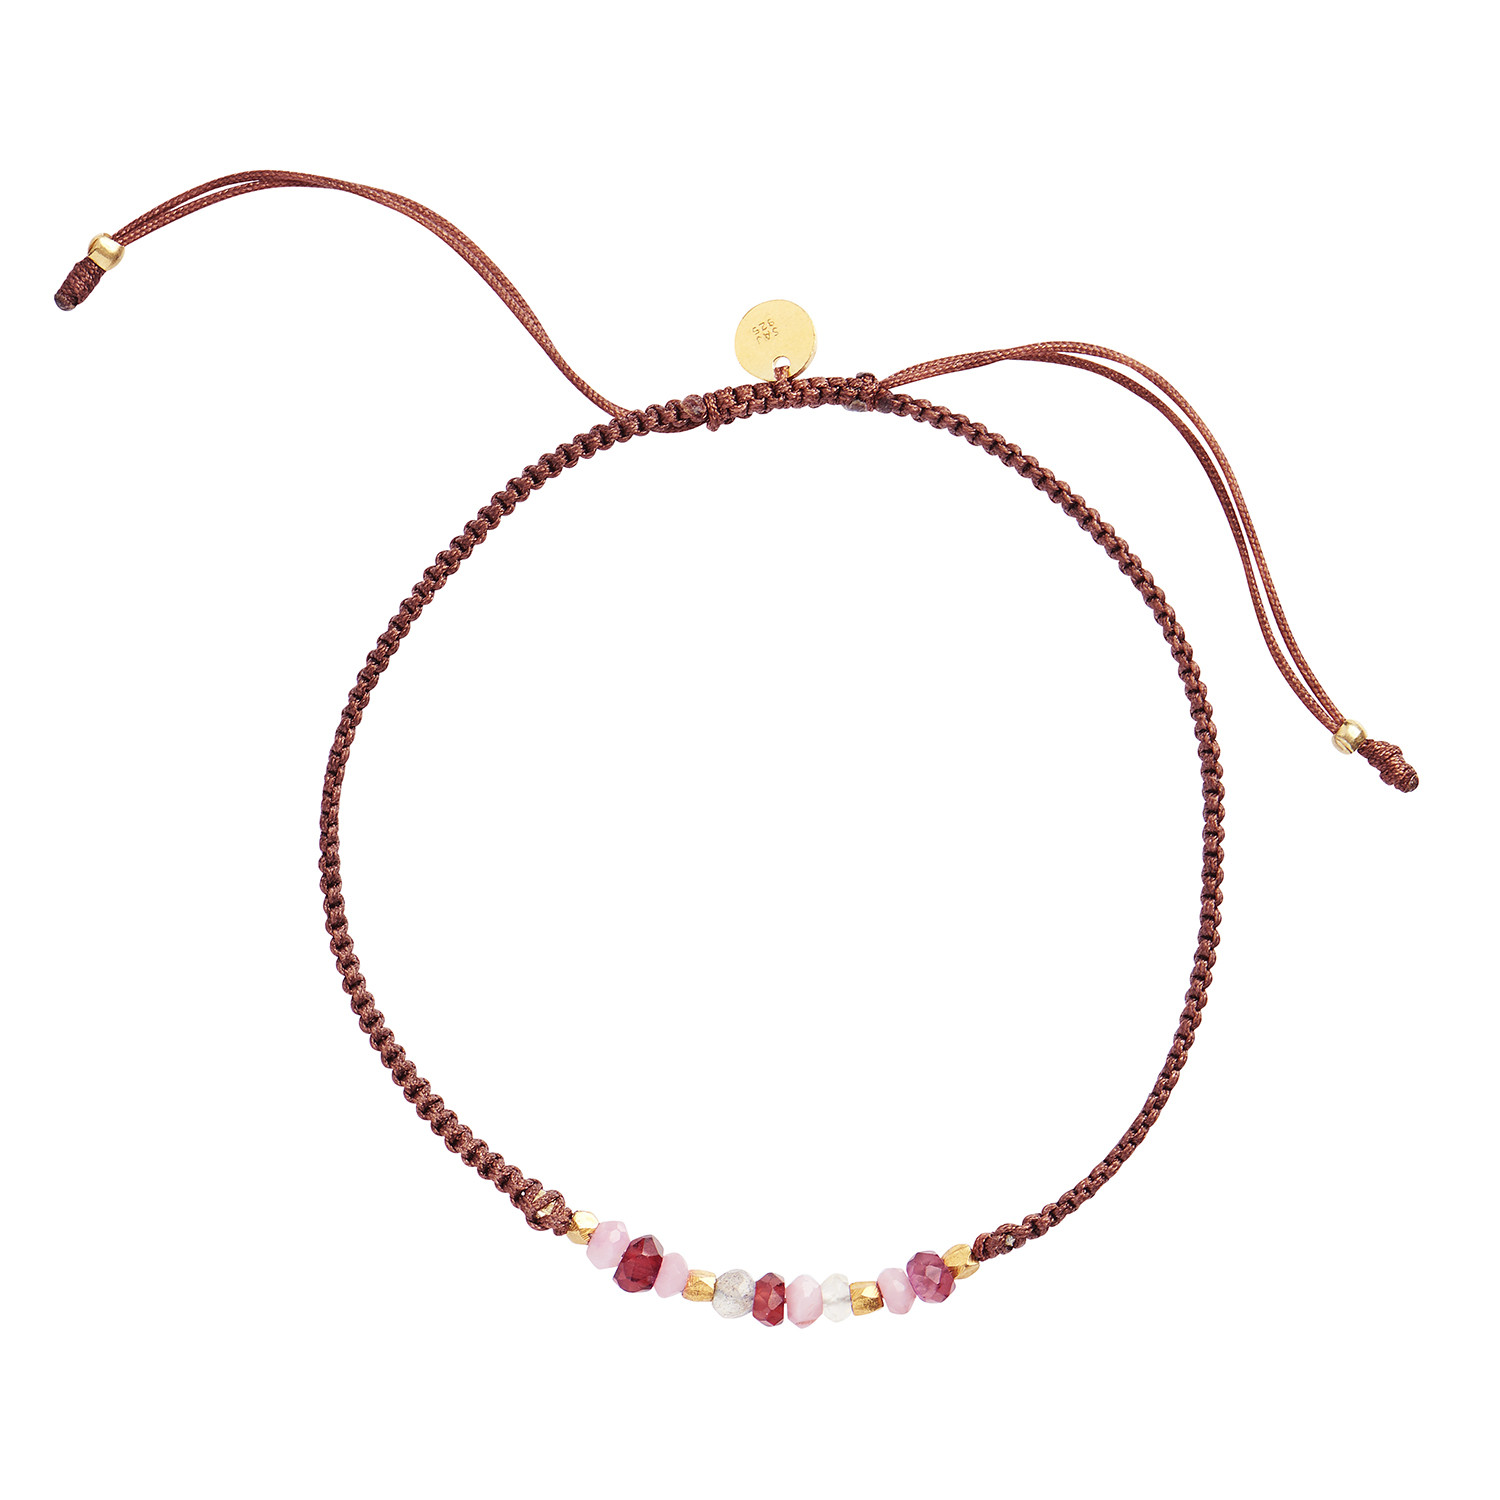 Candy Bracelet - Bordeaux Mix Gemstones and Brown Ribbon